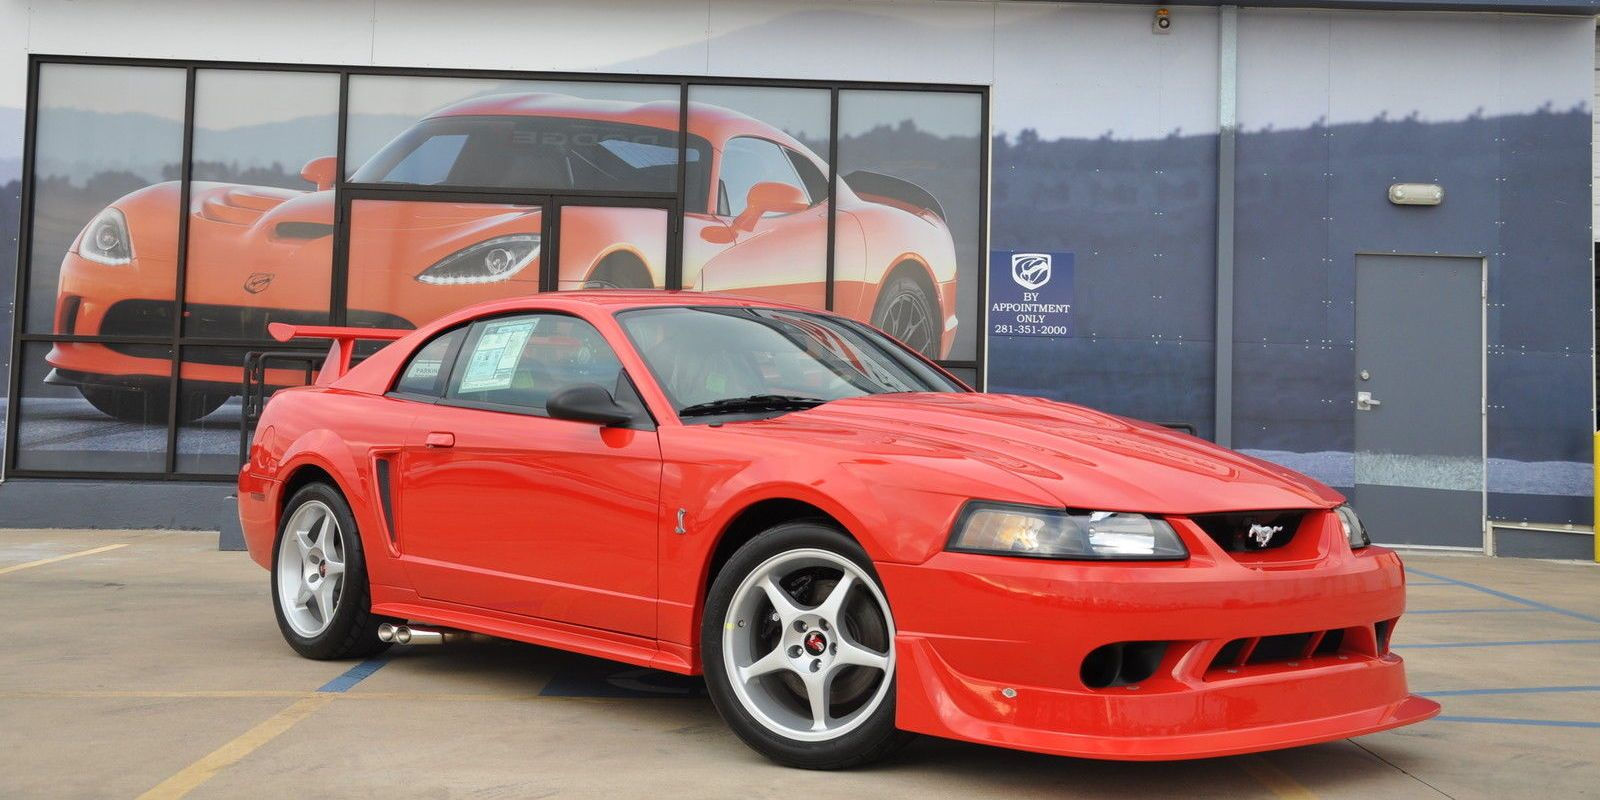 There's a Brand New 2000 Ford Mustang Cobra R For Sale on eBay